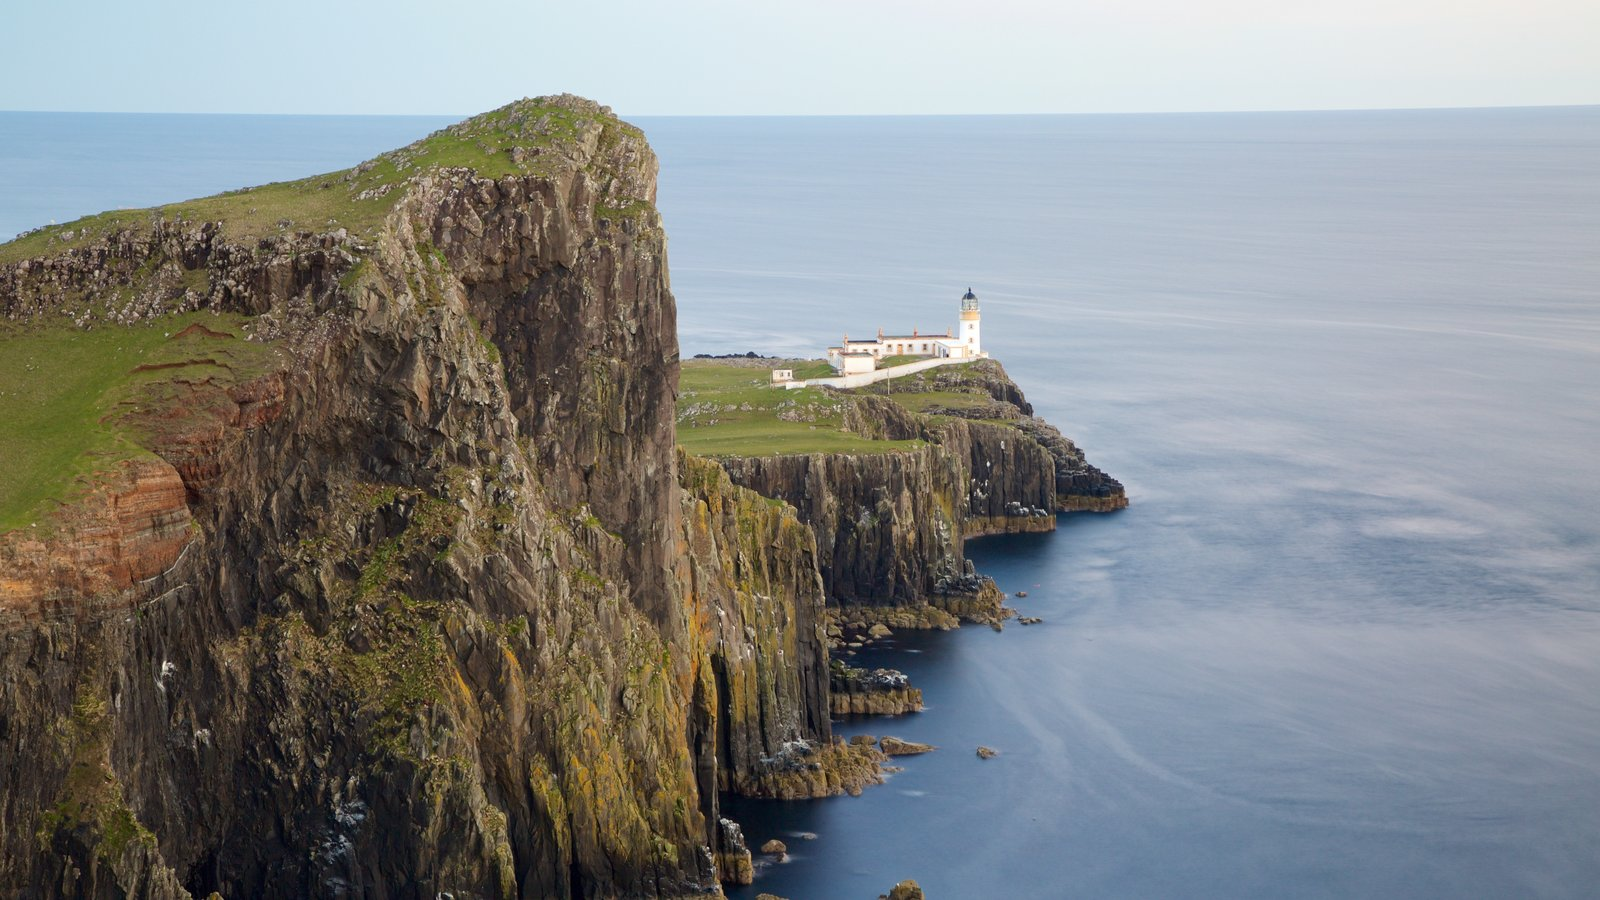 Isle of Skye featuring rugged coastline and a lighthouse